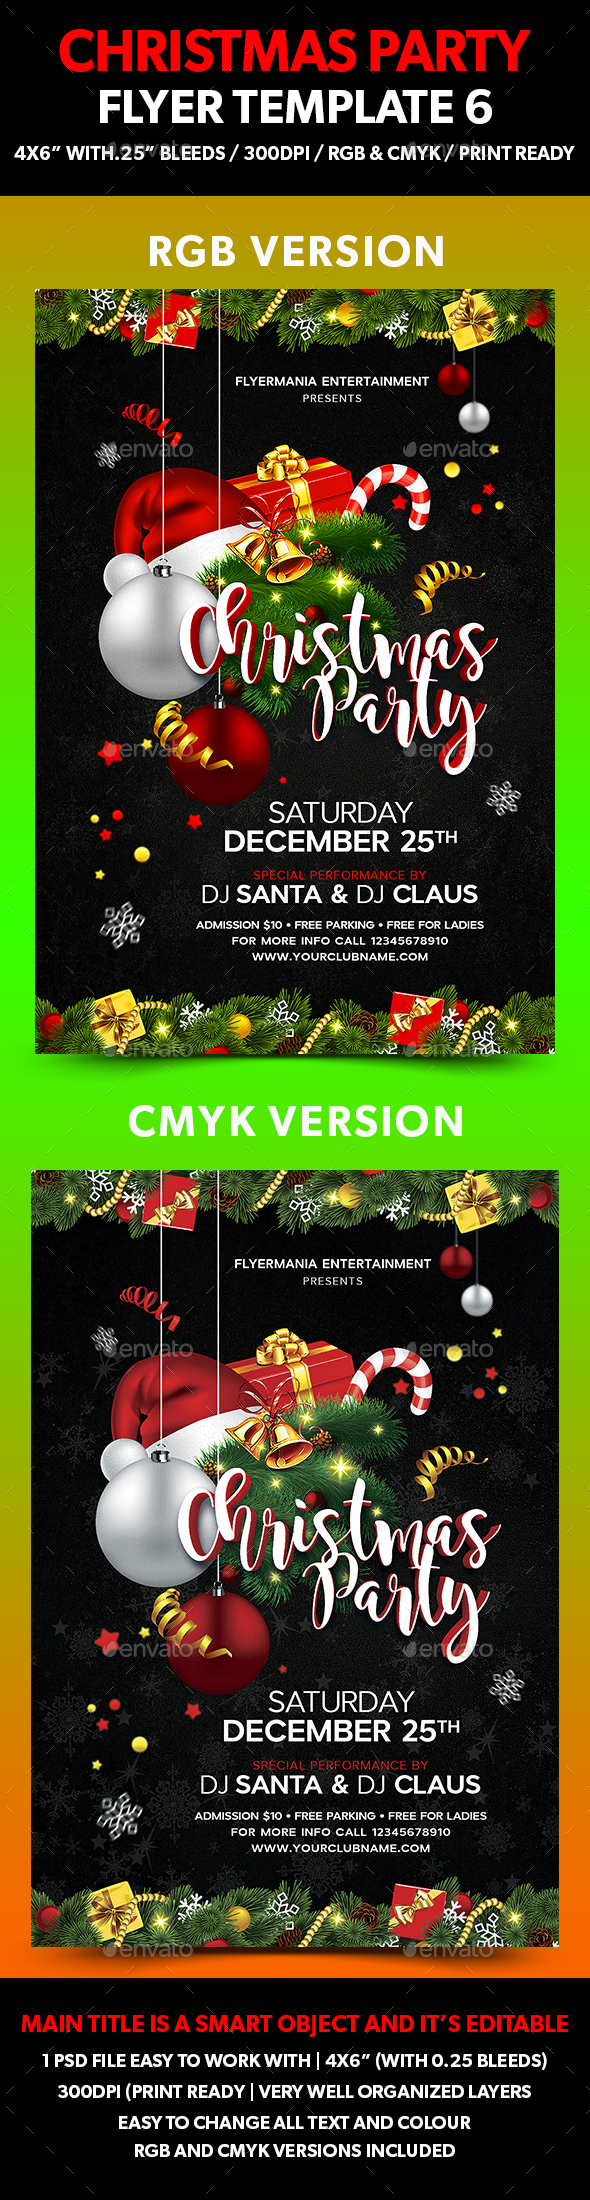 Christmas Party Flyer Template 6